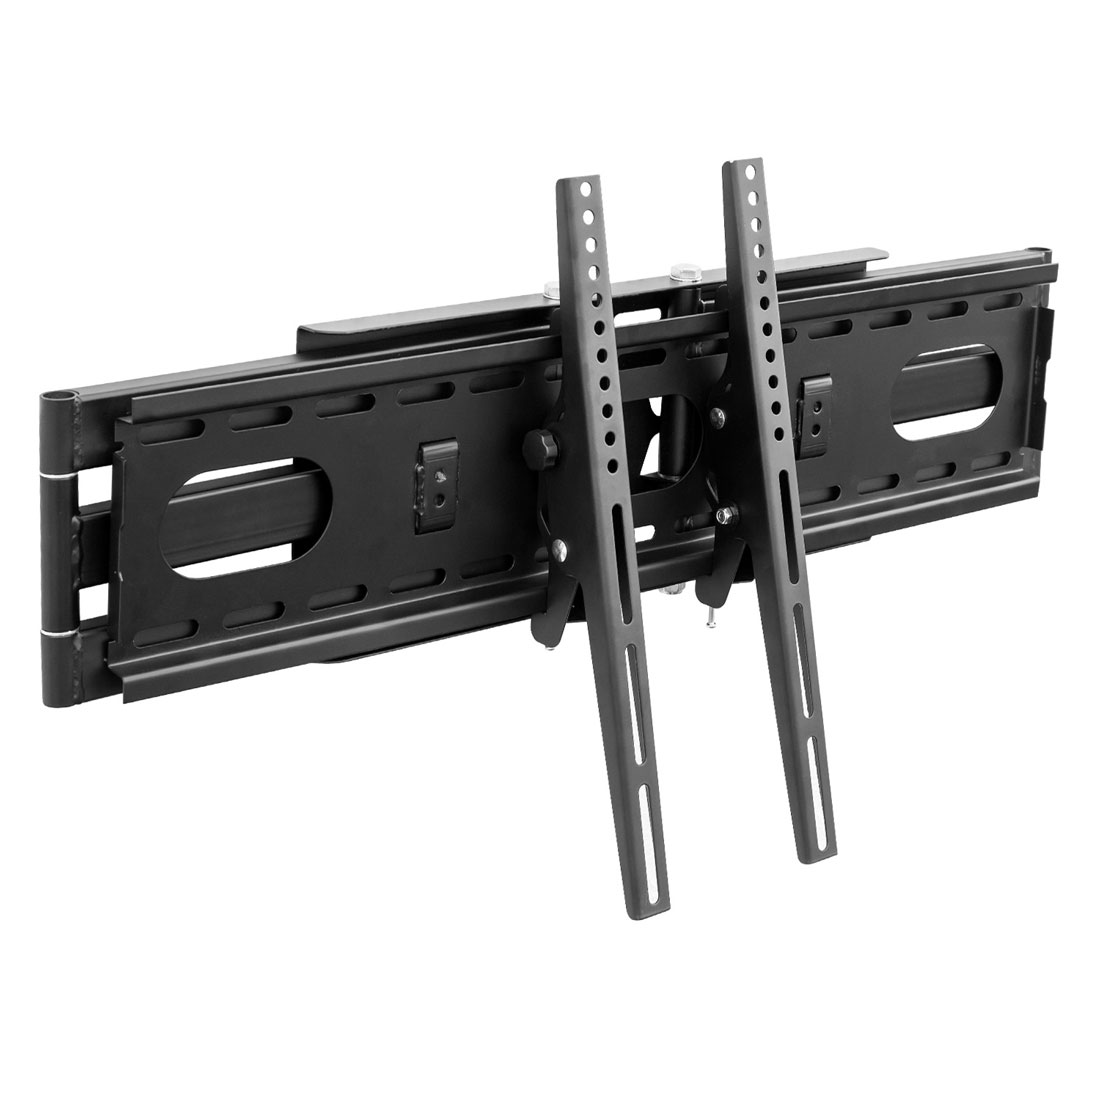 Support Mural Tv à 70 Orientable Bras Double Distance Au Mur 67cm